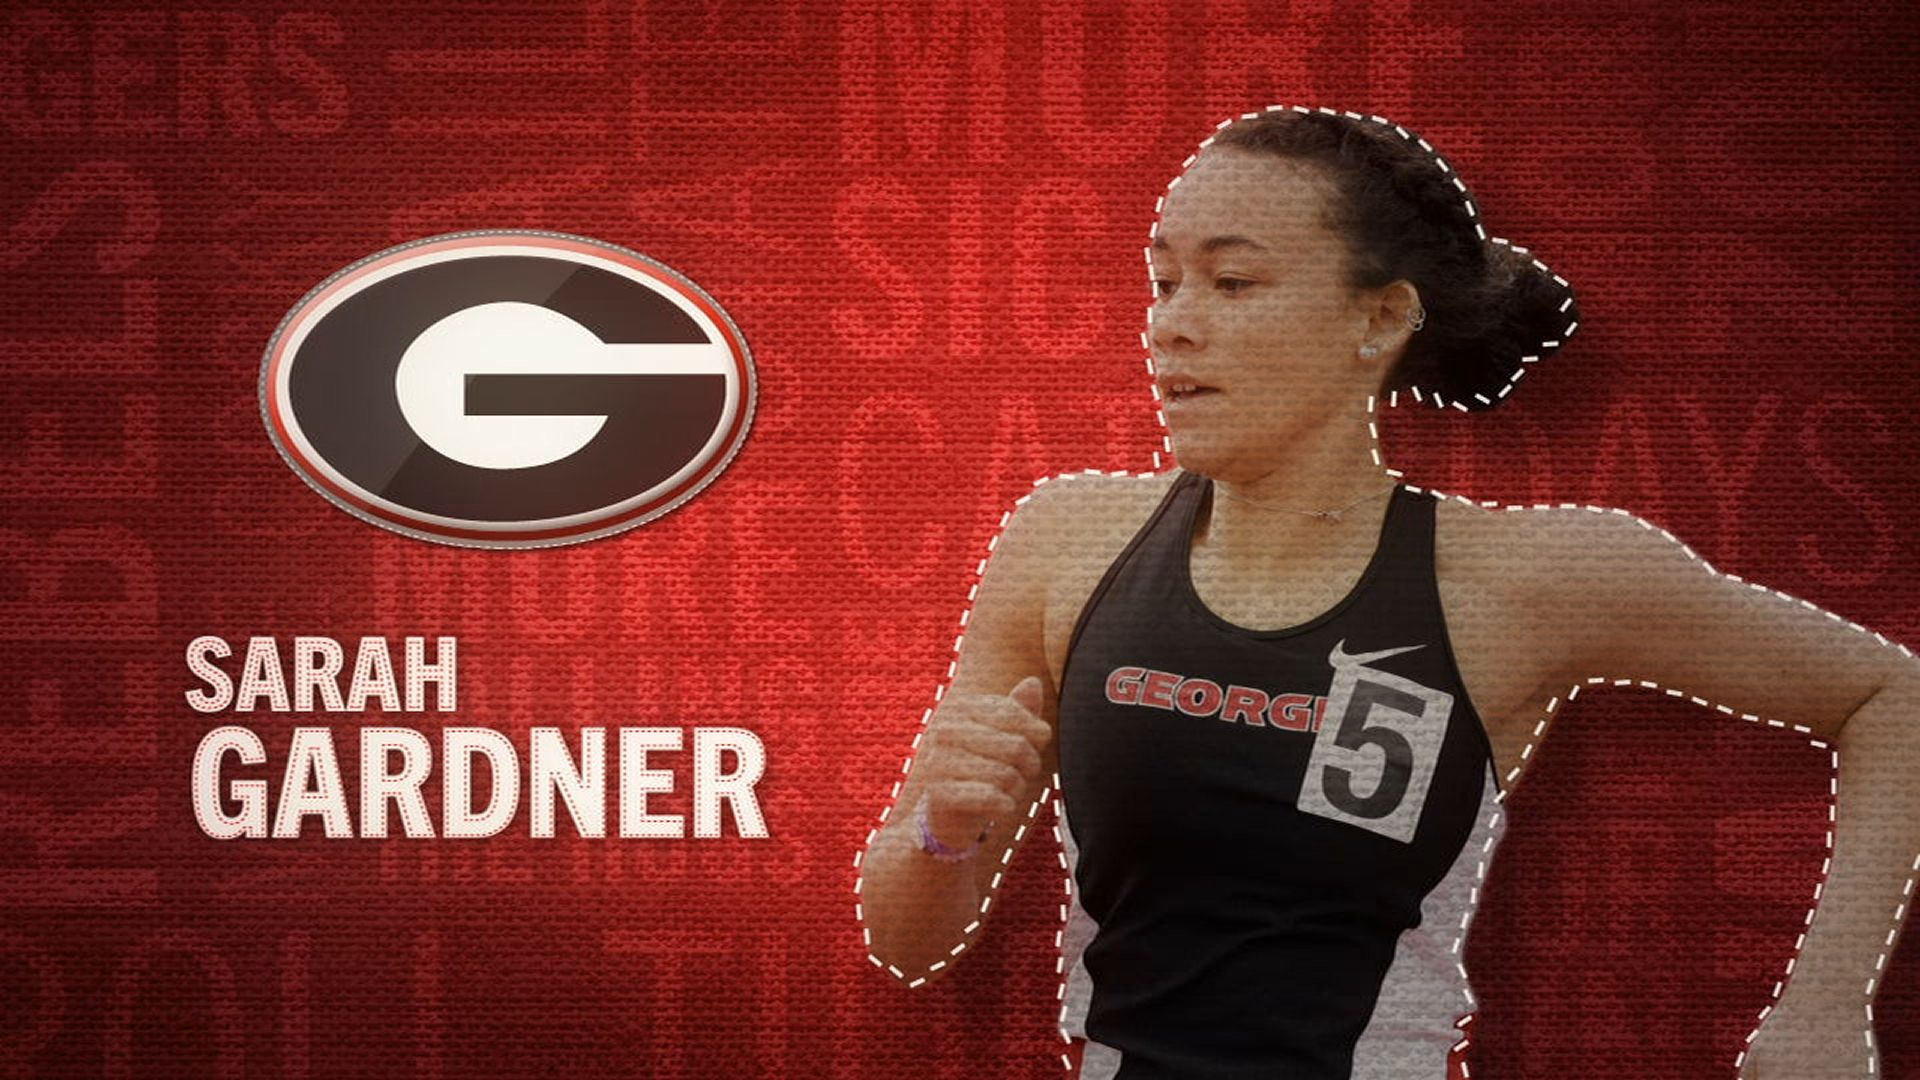 I am the SEC: Georgia's Sarah Gardner